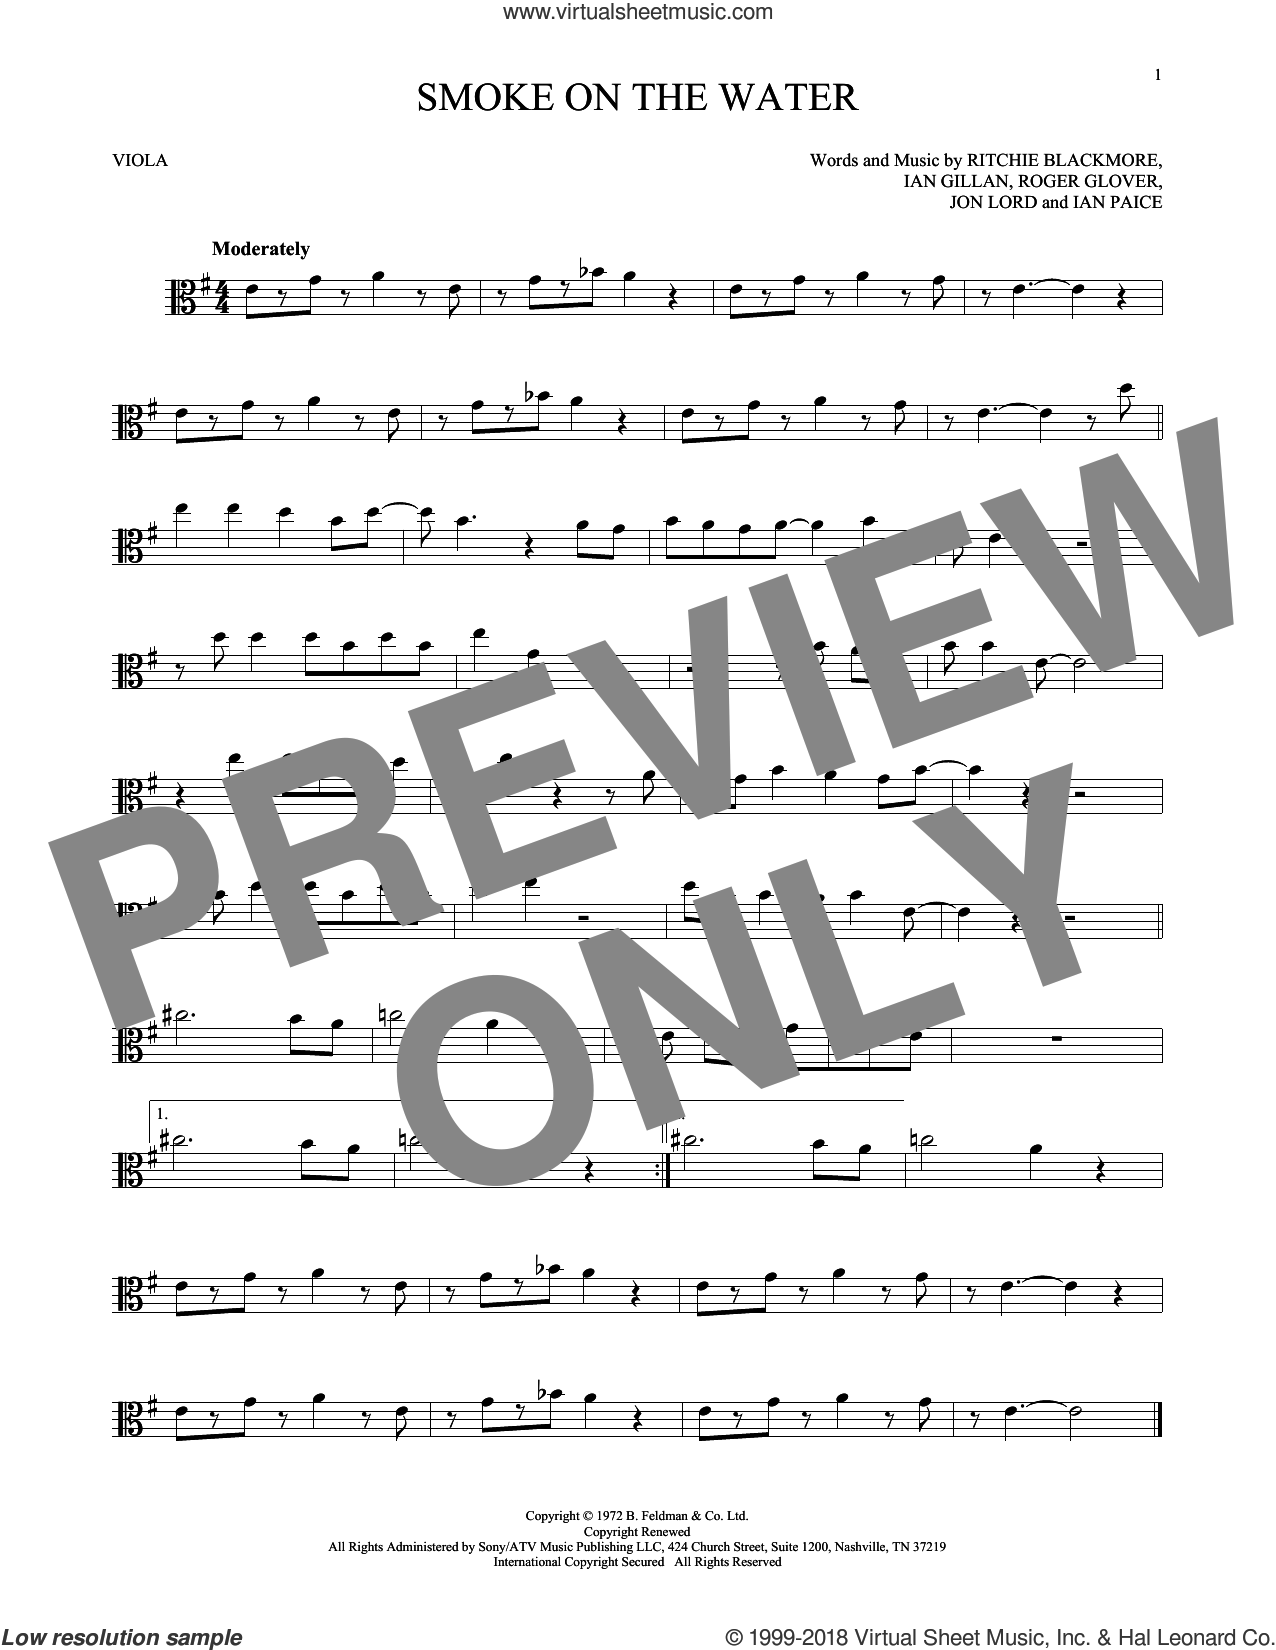 Smoke On The Water sheet music for viola solo by Deep Purple, Ian Gillan, Ian Paice, Jon Lord, Ritchie Blackmore and Roger Glover, intermediate skill level